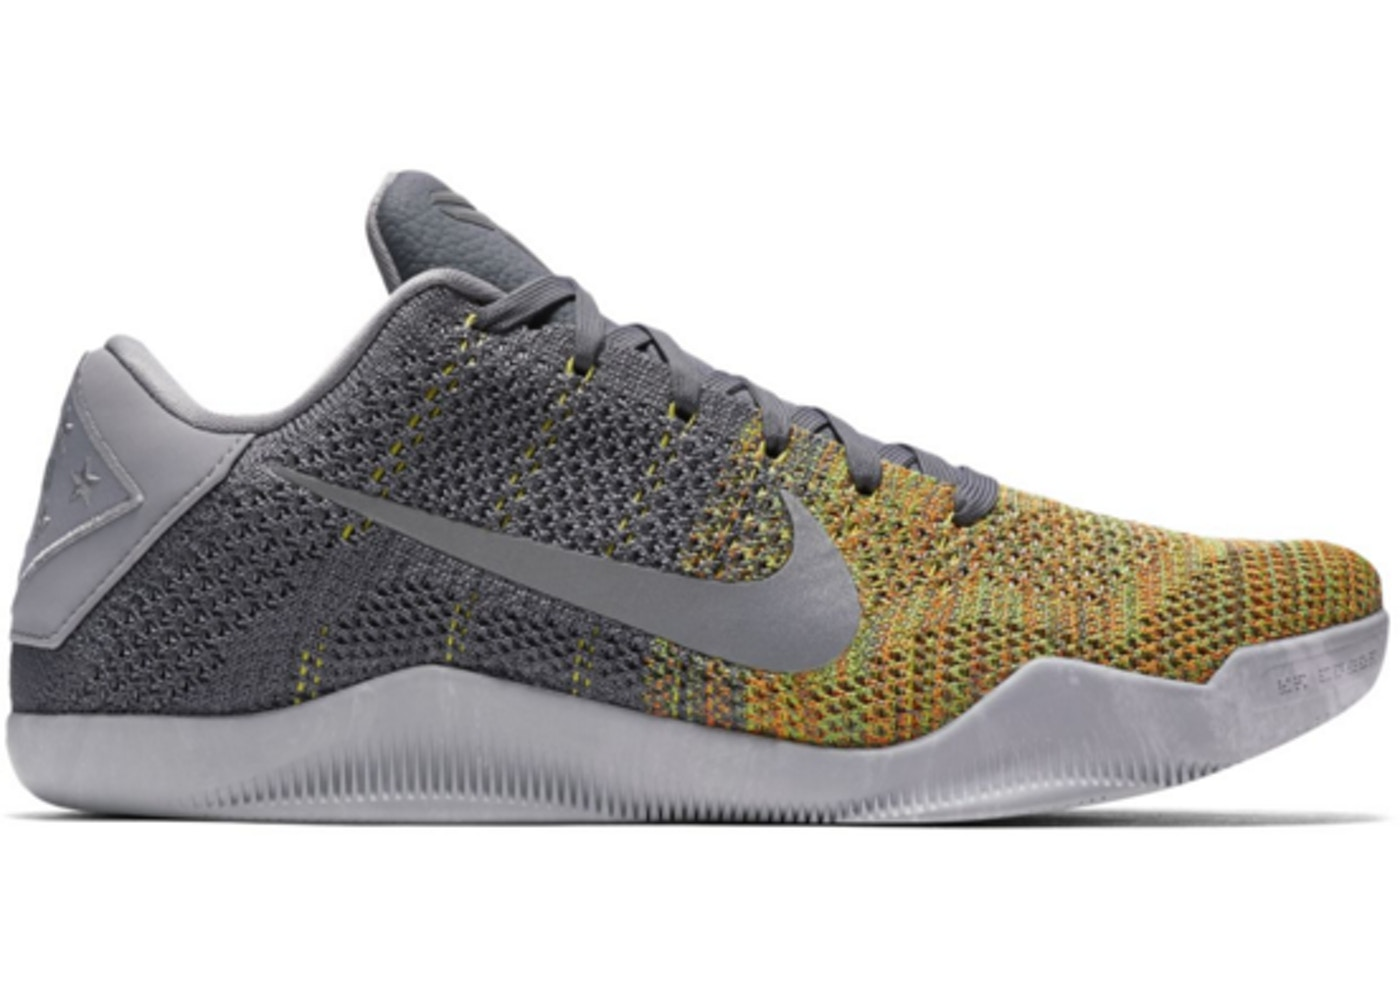 df9eb1aa2b57 Kobe 11 Elite Low Master of Innovation - 822675-037